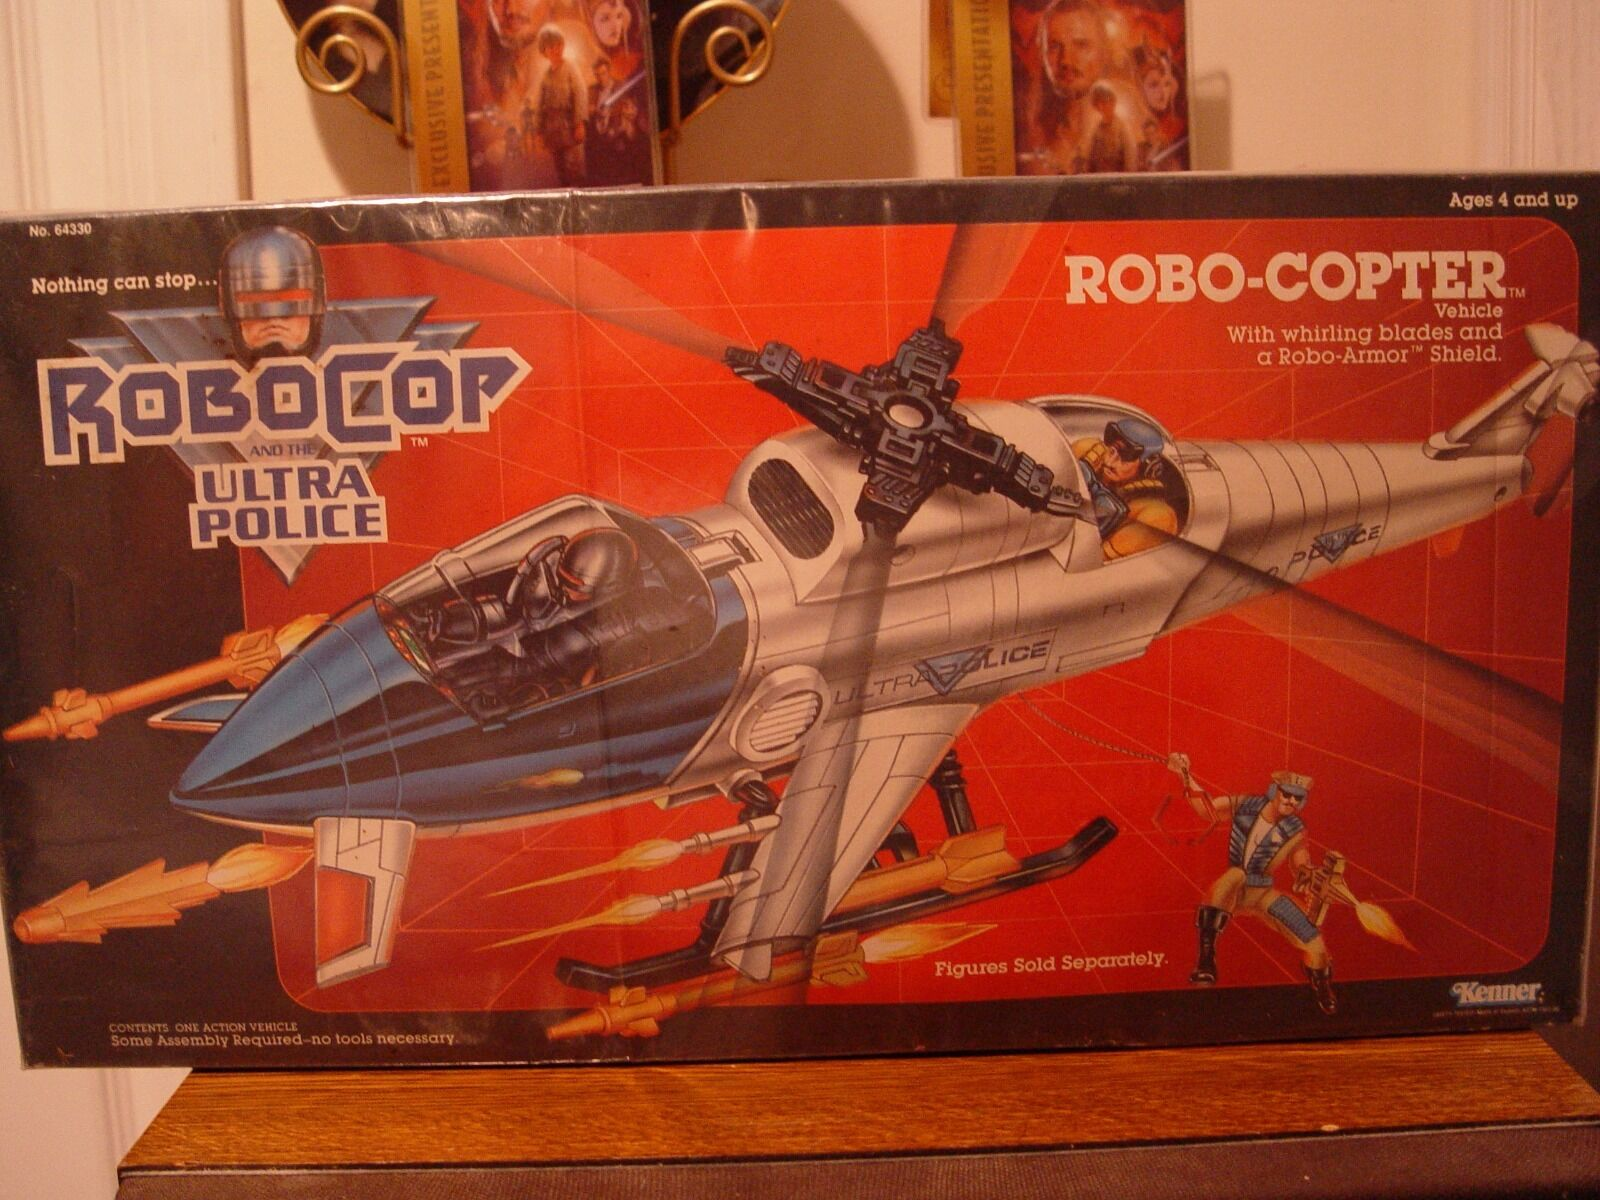 Kenner Robo-Copter Vehicle (1988) MISB MISB MISB 7b090f